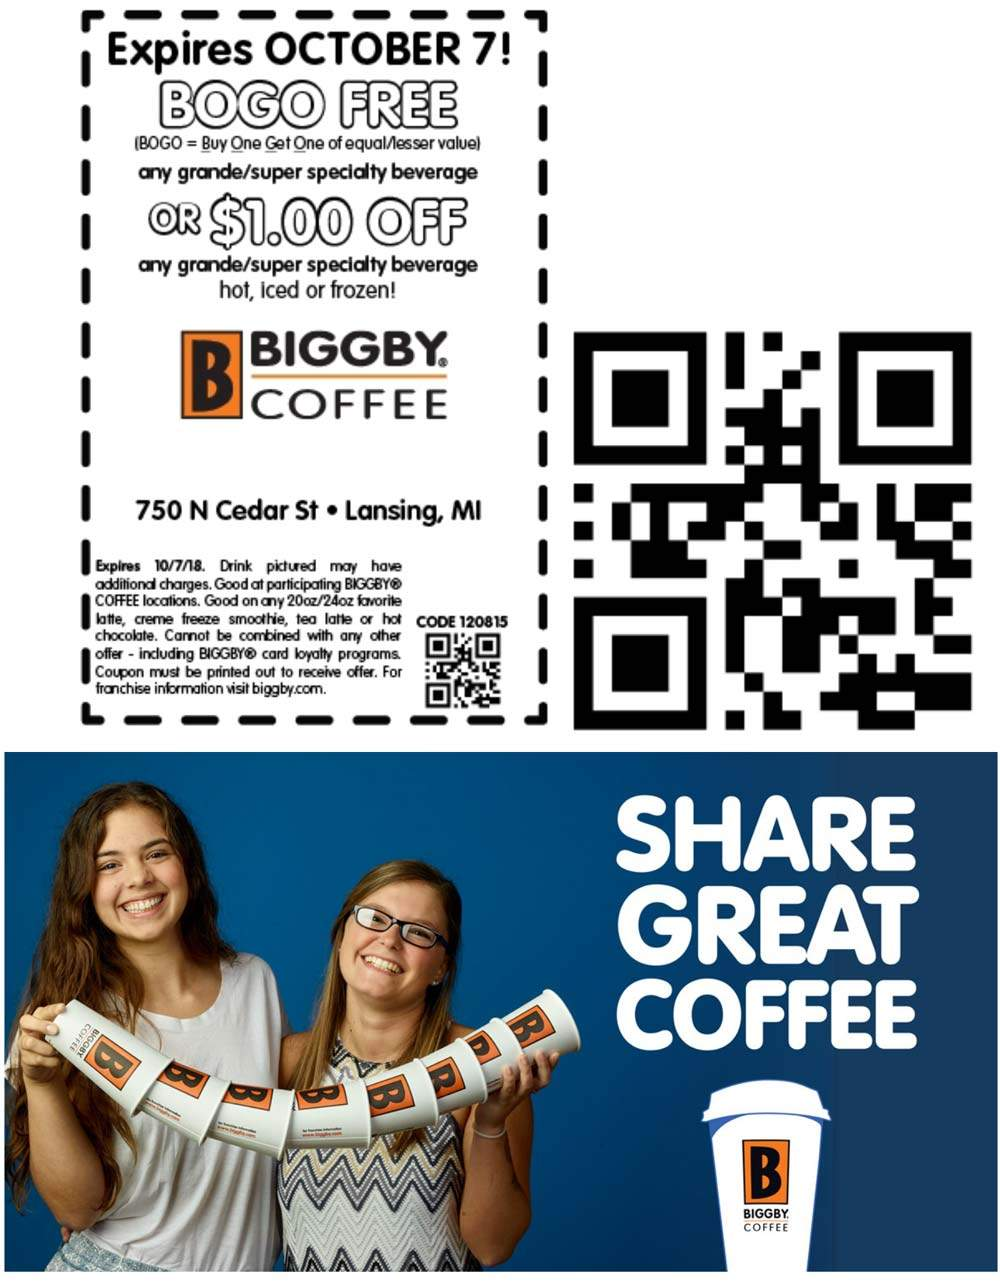 Biggby Coffee Coupon February 2020 Second coffee free at Biggby Coffee